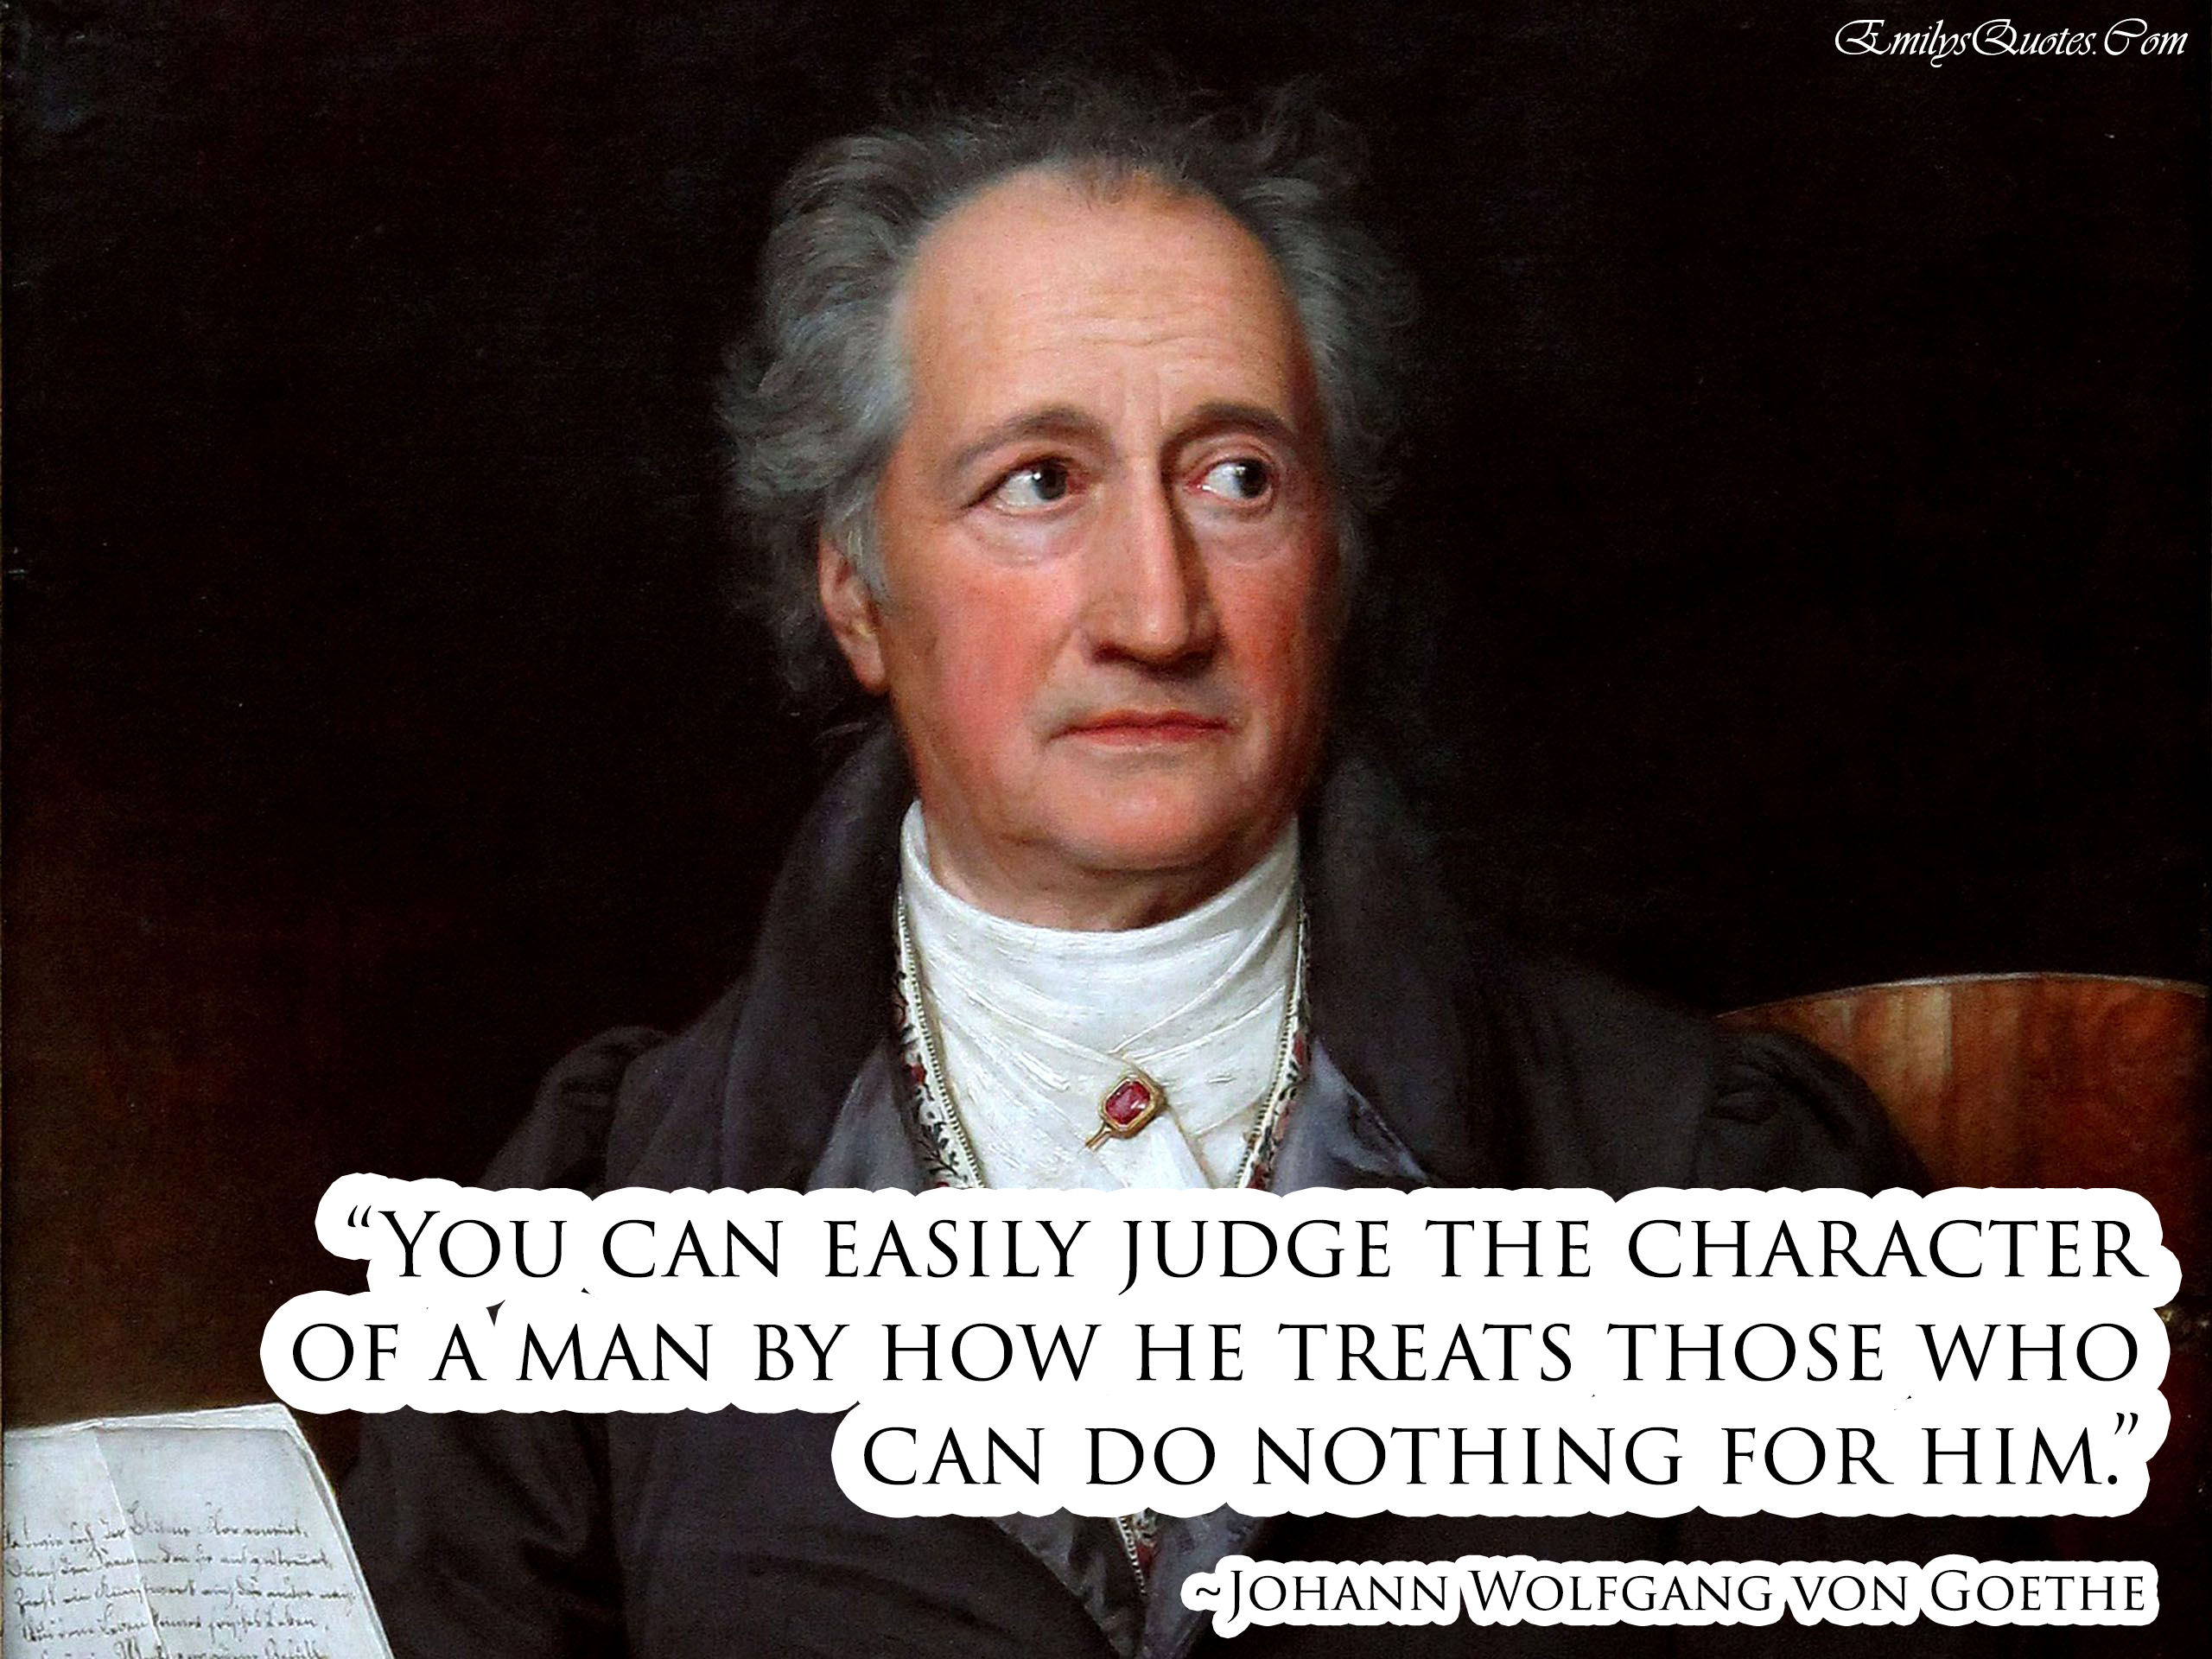 johann wolfgang von goethe essay - johann wolfgang von goethe johann wolfgang von goethe was born in 1749 on august 28 in frankfurt, germany, and died in 1832 on march 22 in weimar, germany goethe was 82 at his time of death and he lived in modern times.